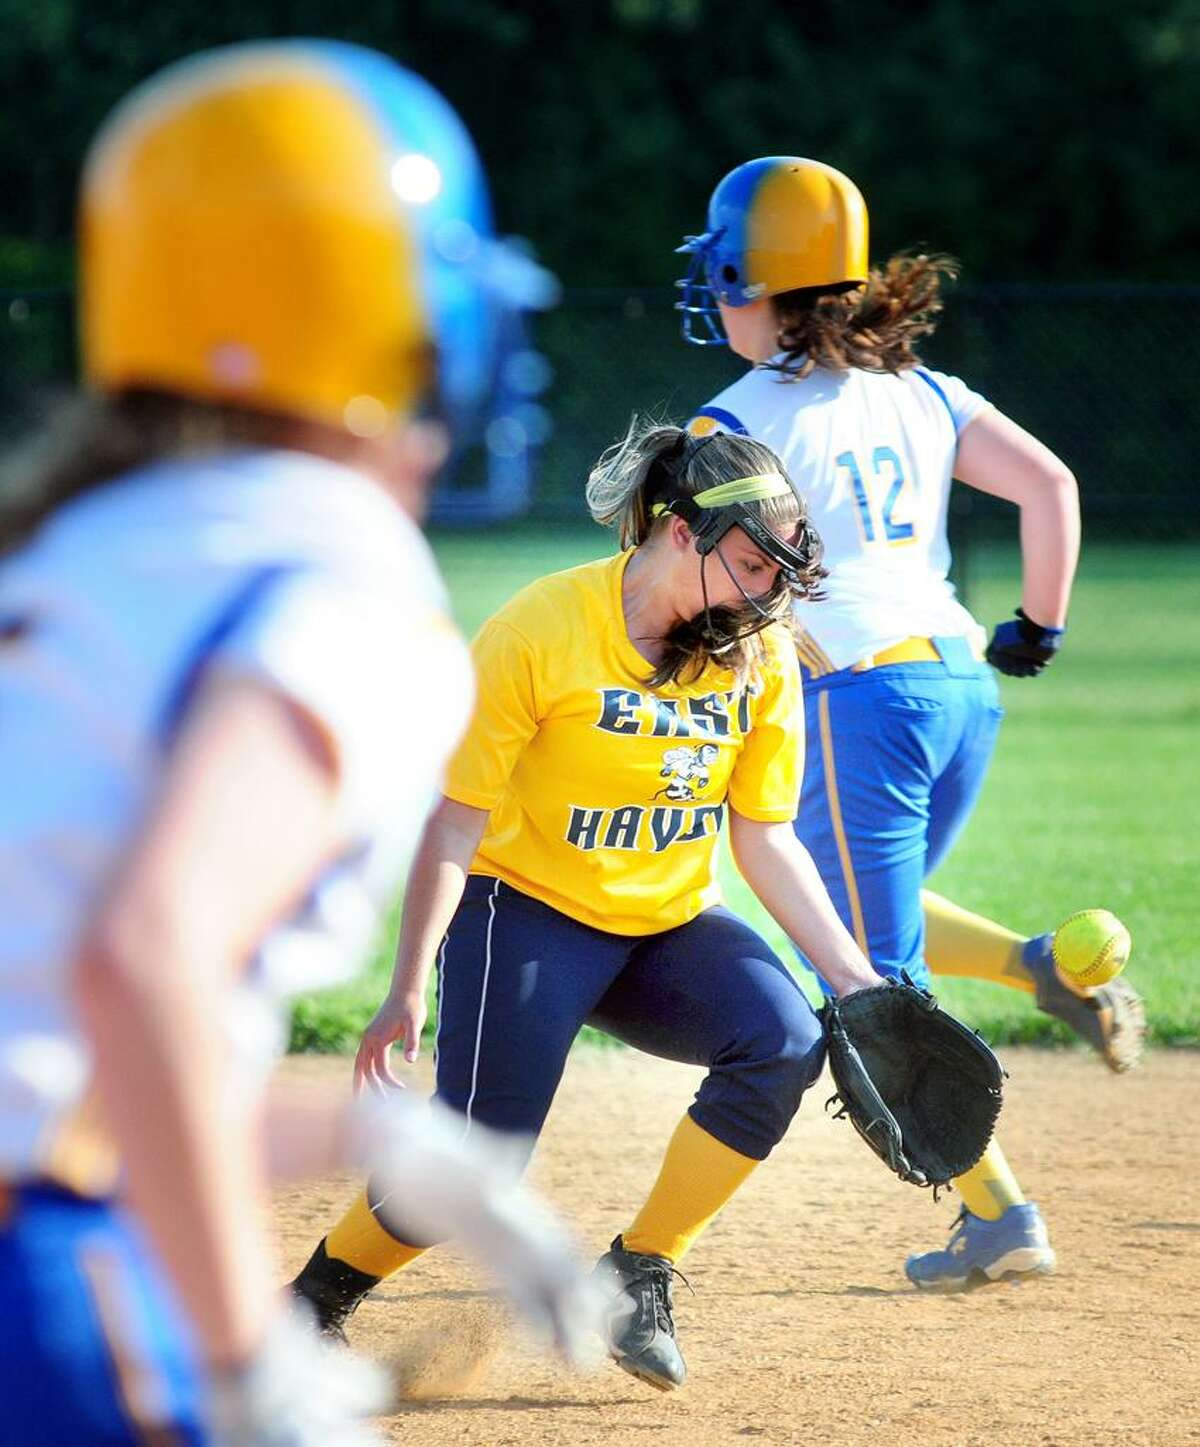 Alyssa Apuzzo (center) of East Haven reaches for the ball after misplaying a grounder against Seymour in the sixth inning of their Class M quarterfinal on 5/31/2013.Photo by Arnold Gold/New Haven Register